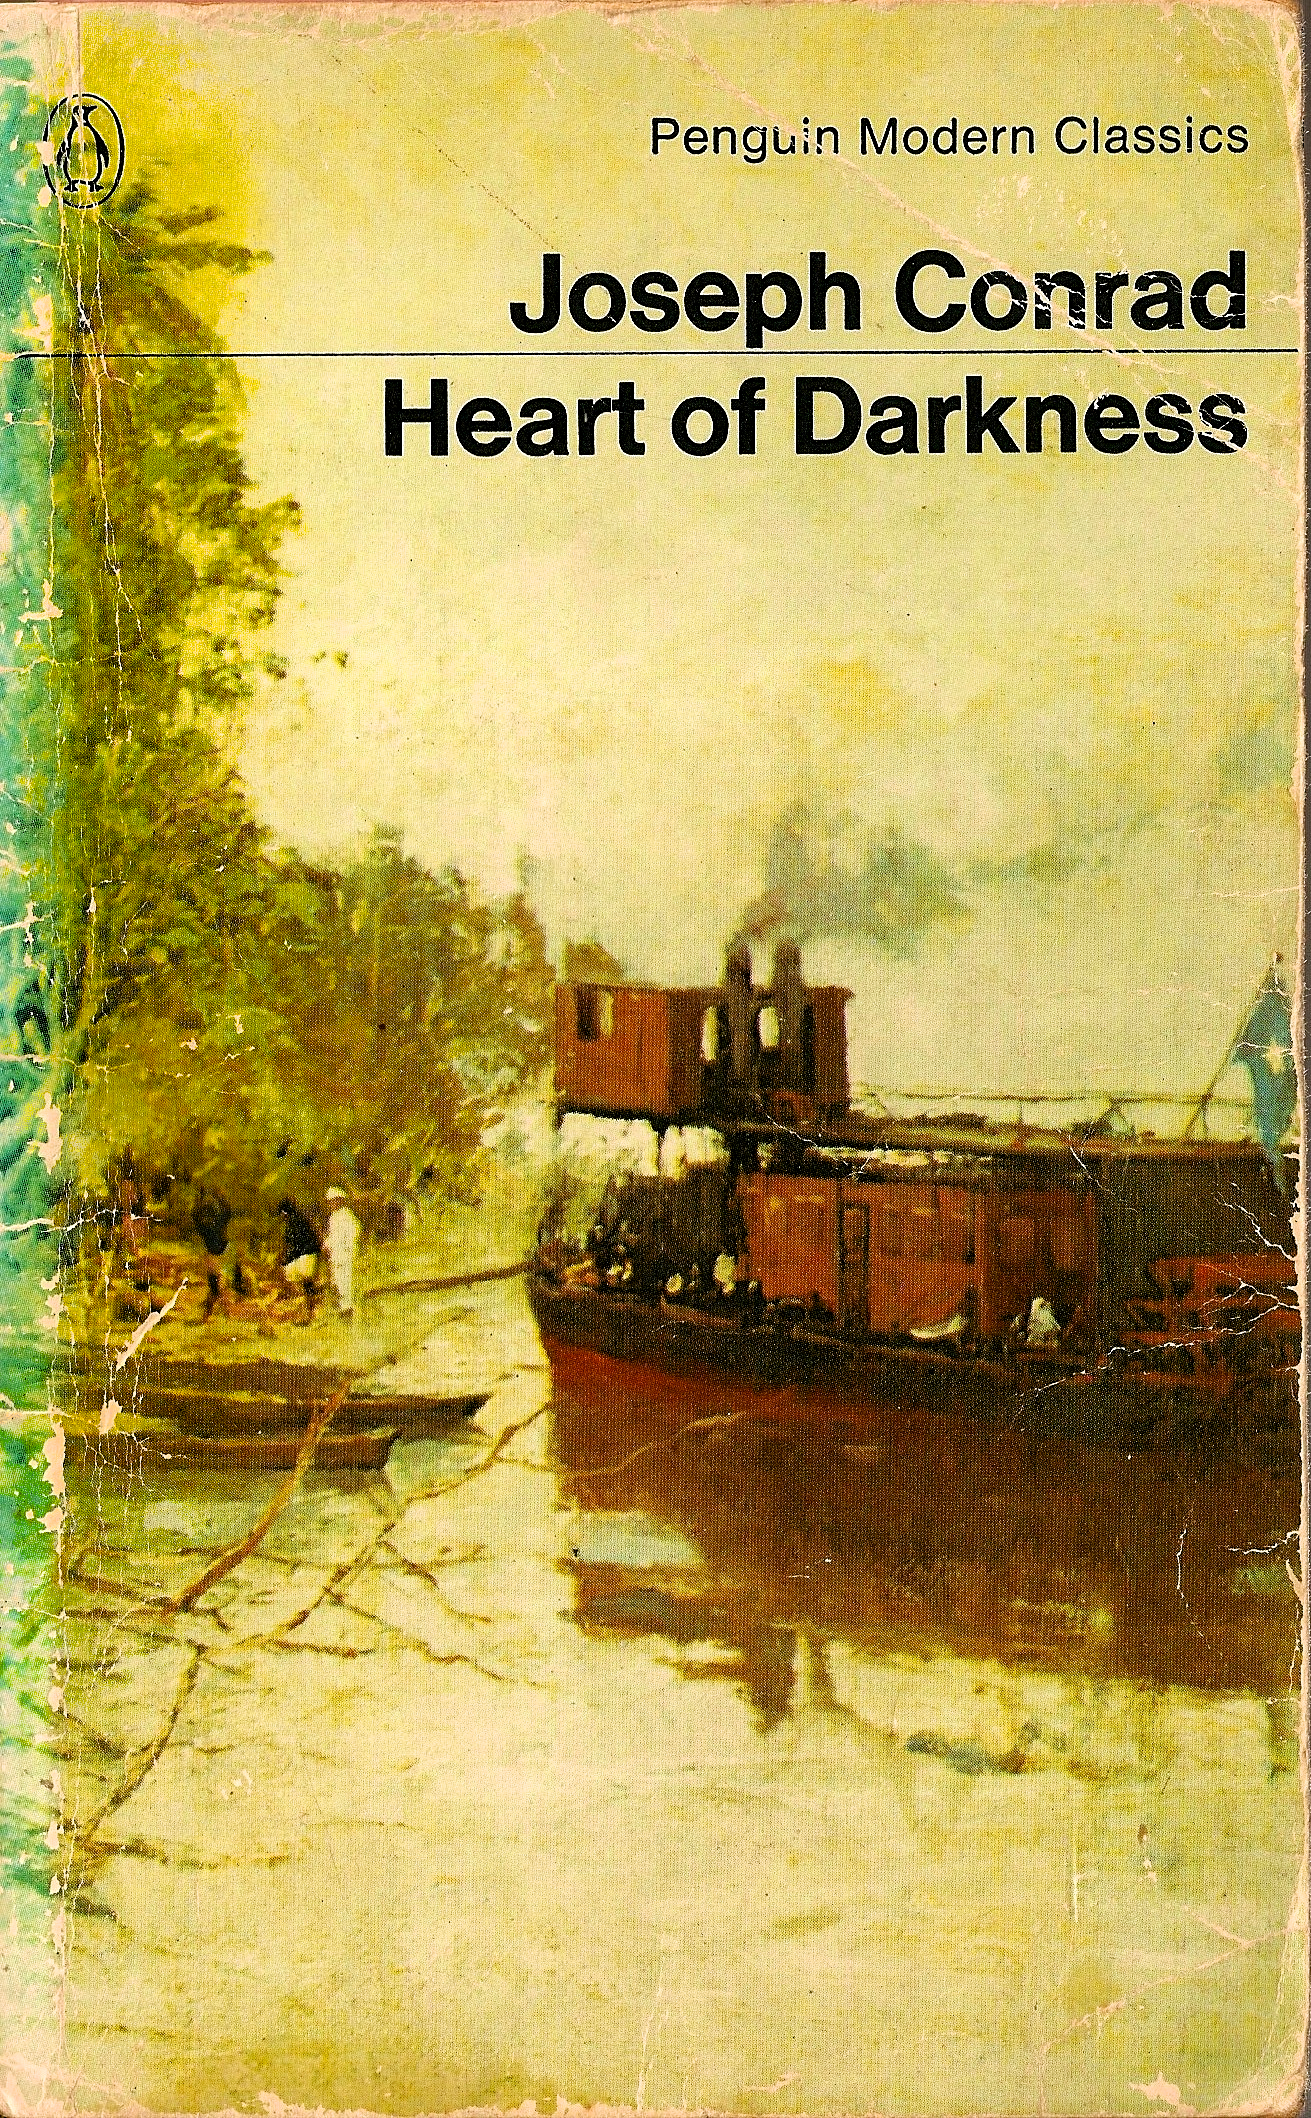 heart of darkness metaphorical or physical journey essay Conrad uses the journey both in its literal and figurative meanings  through the  use of the physical journey in heart of darkness, the reader can see the inner.